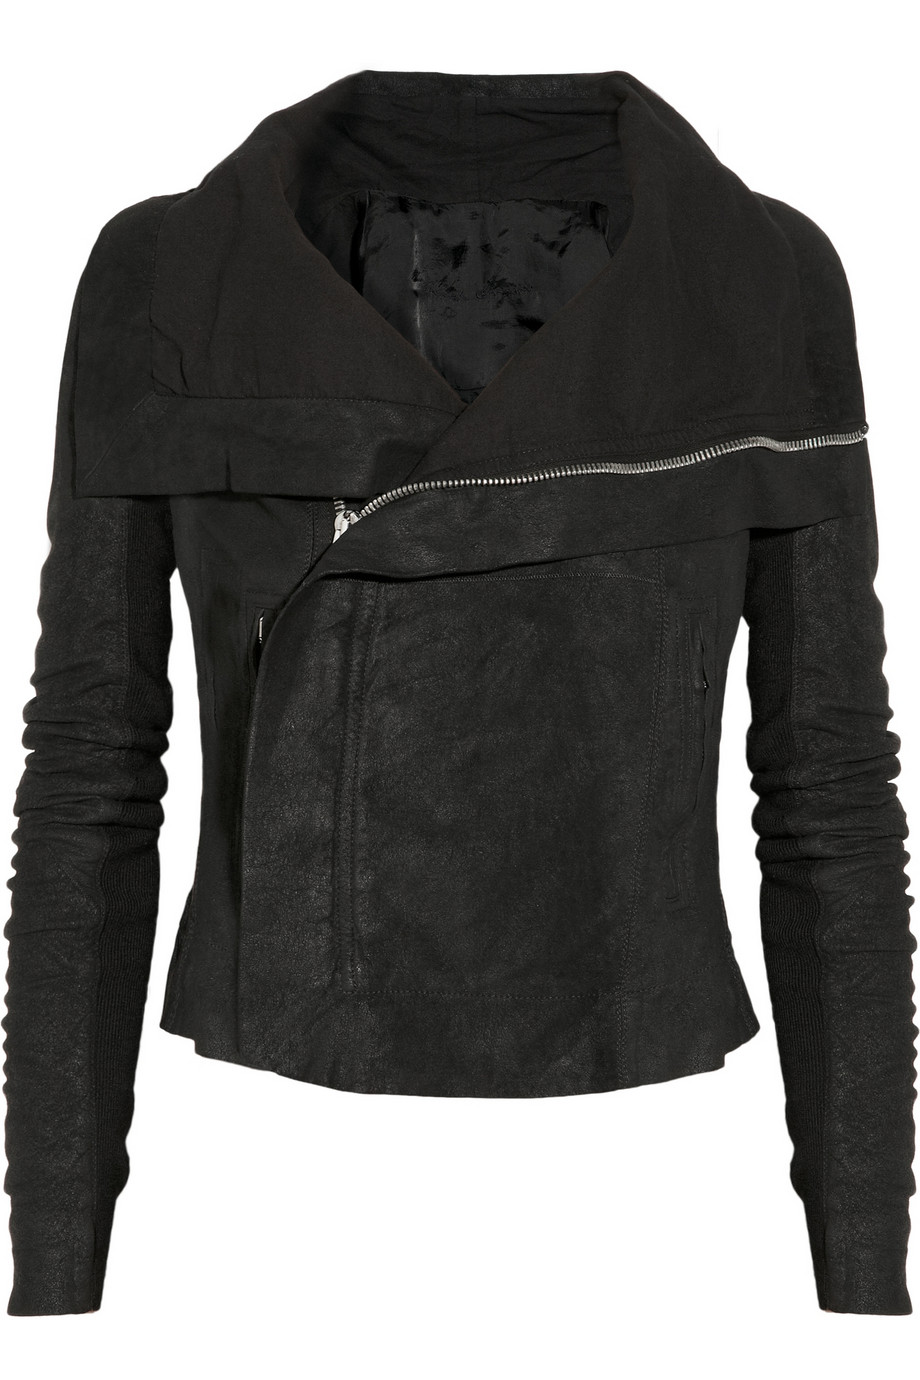 Rick Owens biker jacket - $2,620 at  Net-a-porter